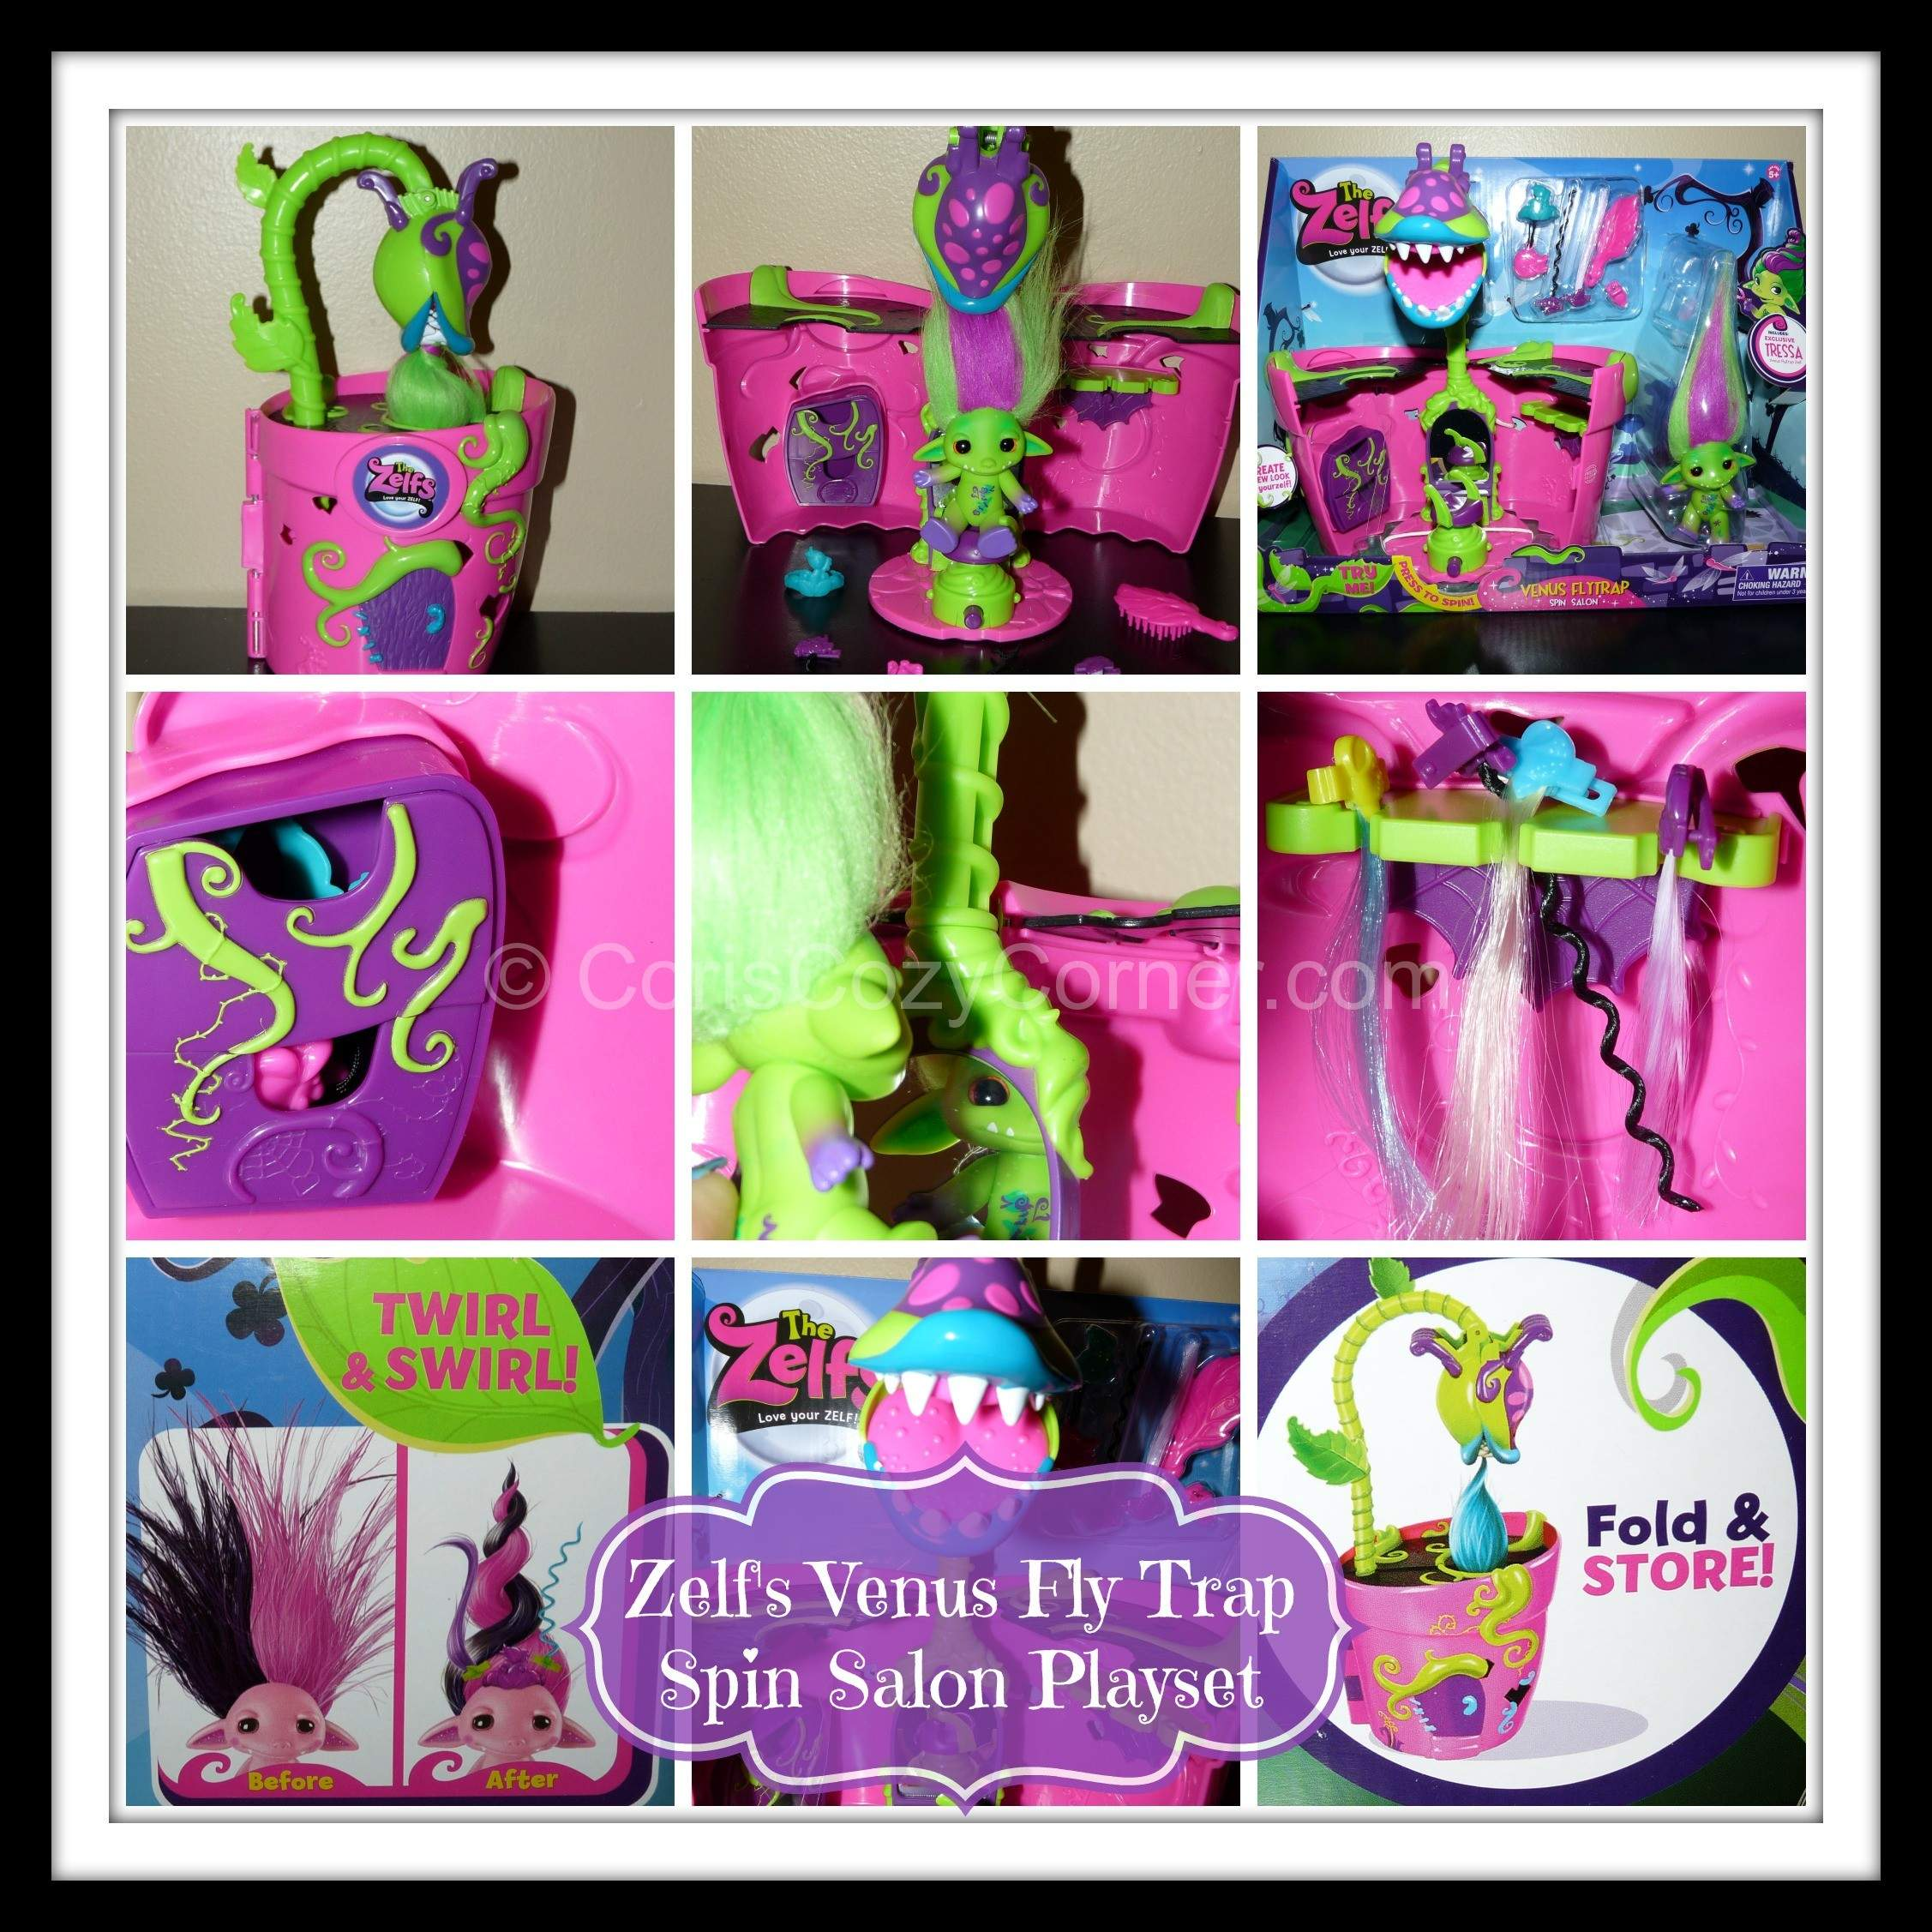 Coloring pages zelfs - Zelf Venus Fly Trap Spin Salon Playset